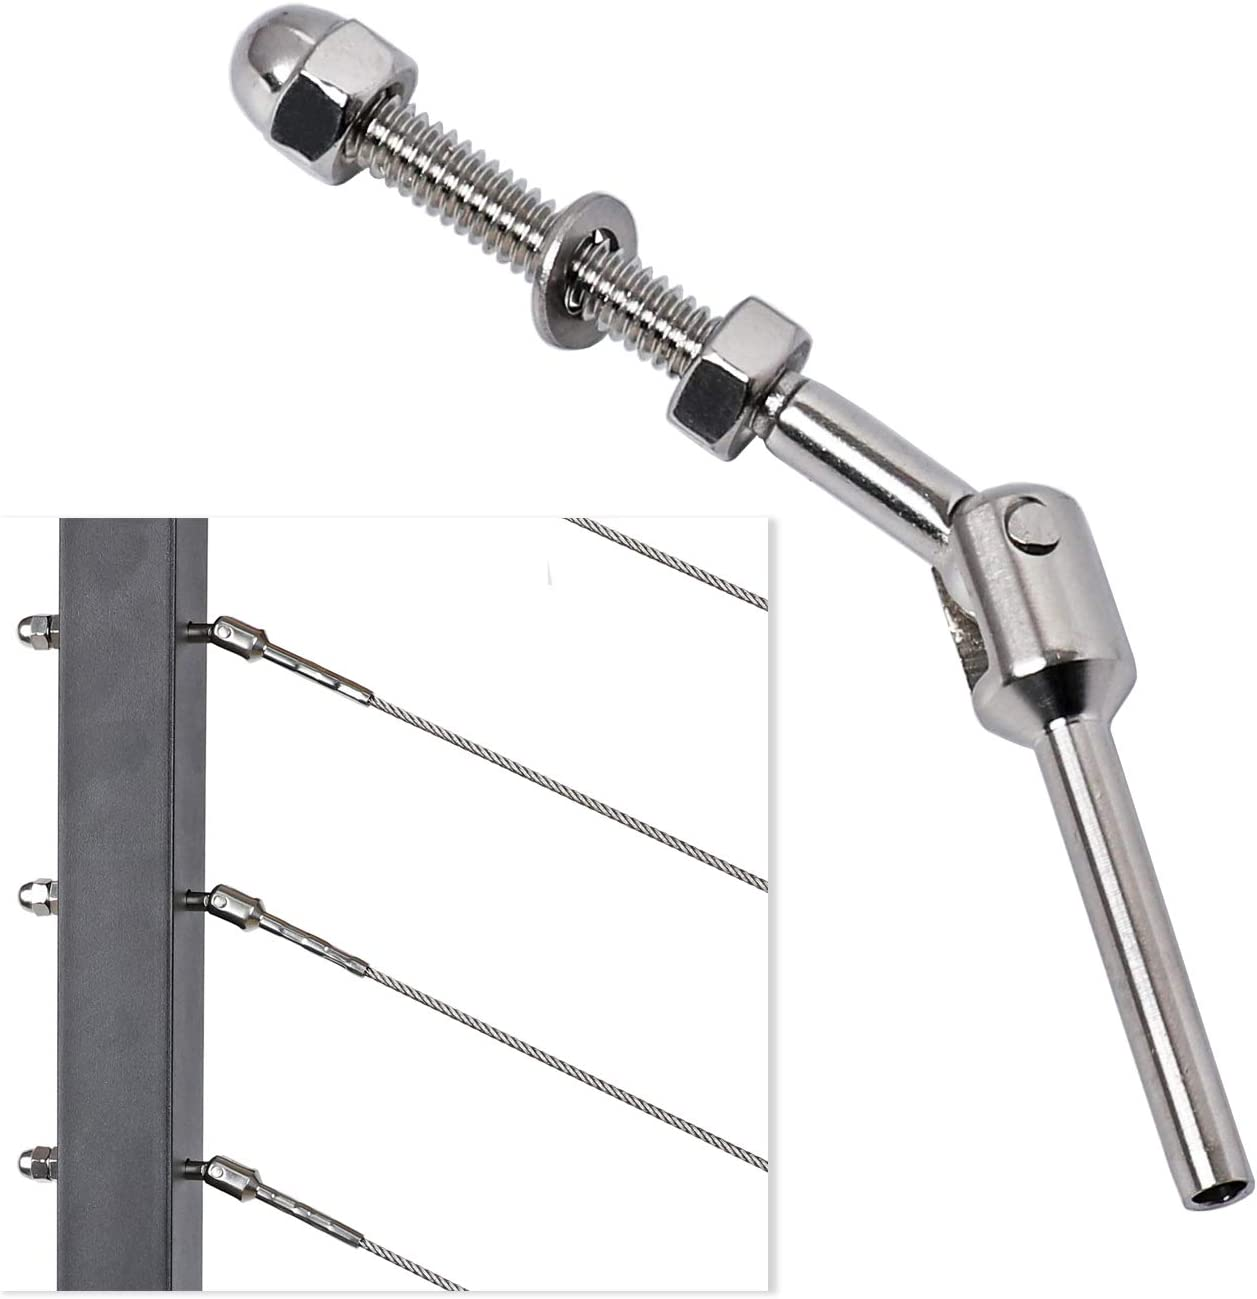 Deck Man 1 8 Inch T316 New Free Quality inspection Shipping Railing Cable Adjustable Stainless Steel